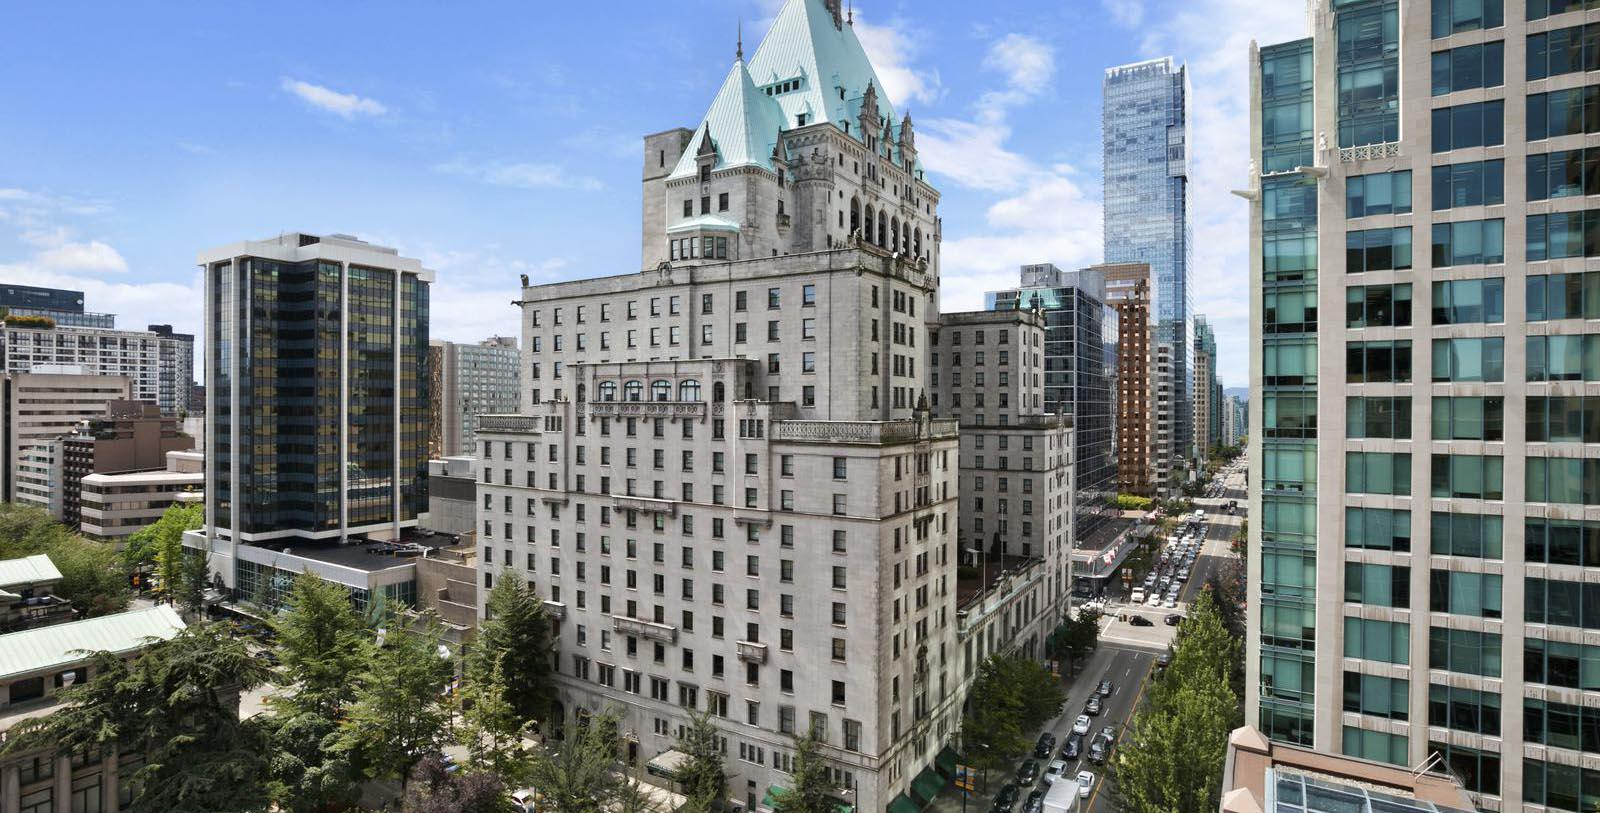 Image of hotel exterior Fairmont Hotel Vancouver, 1939, Member of Historic Hotels Worldwide, in Vancouver, Canada, Overview